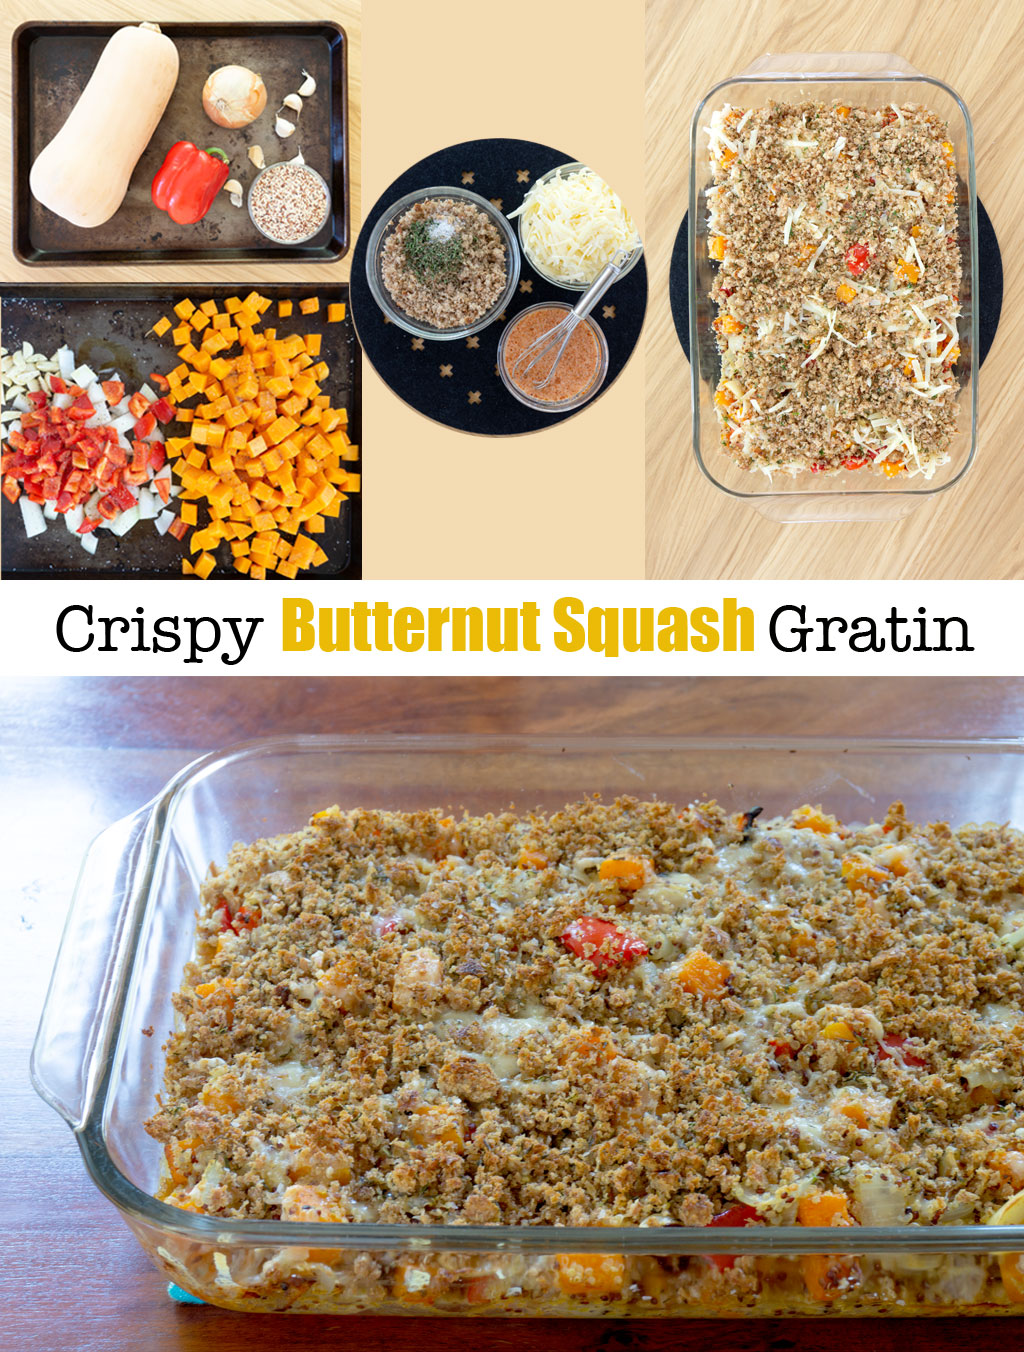 Step by Step Photos for making Butternut Squash Gratin